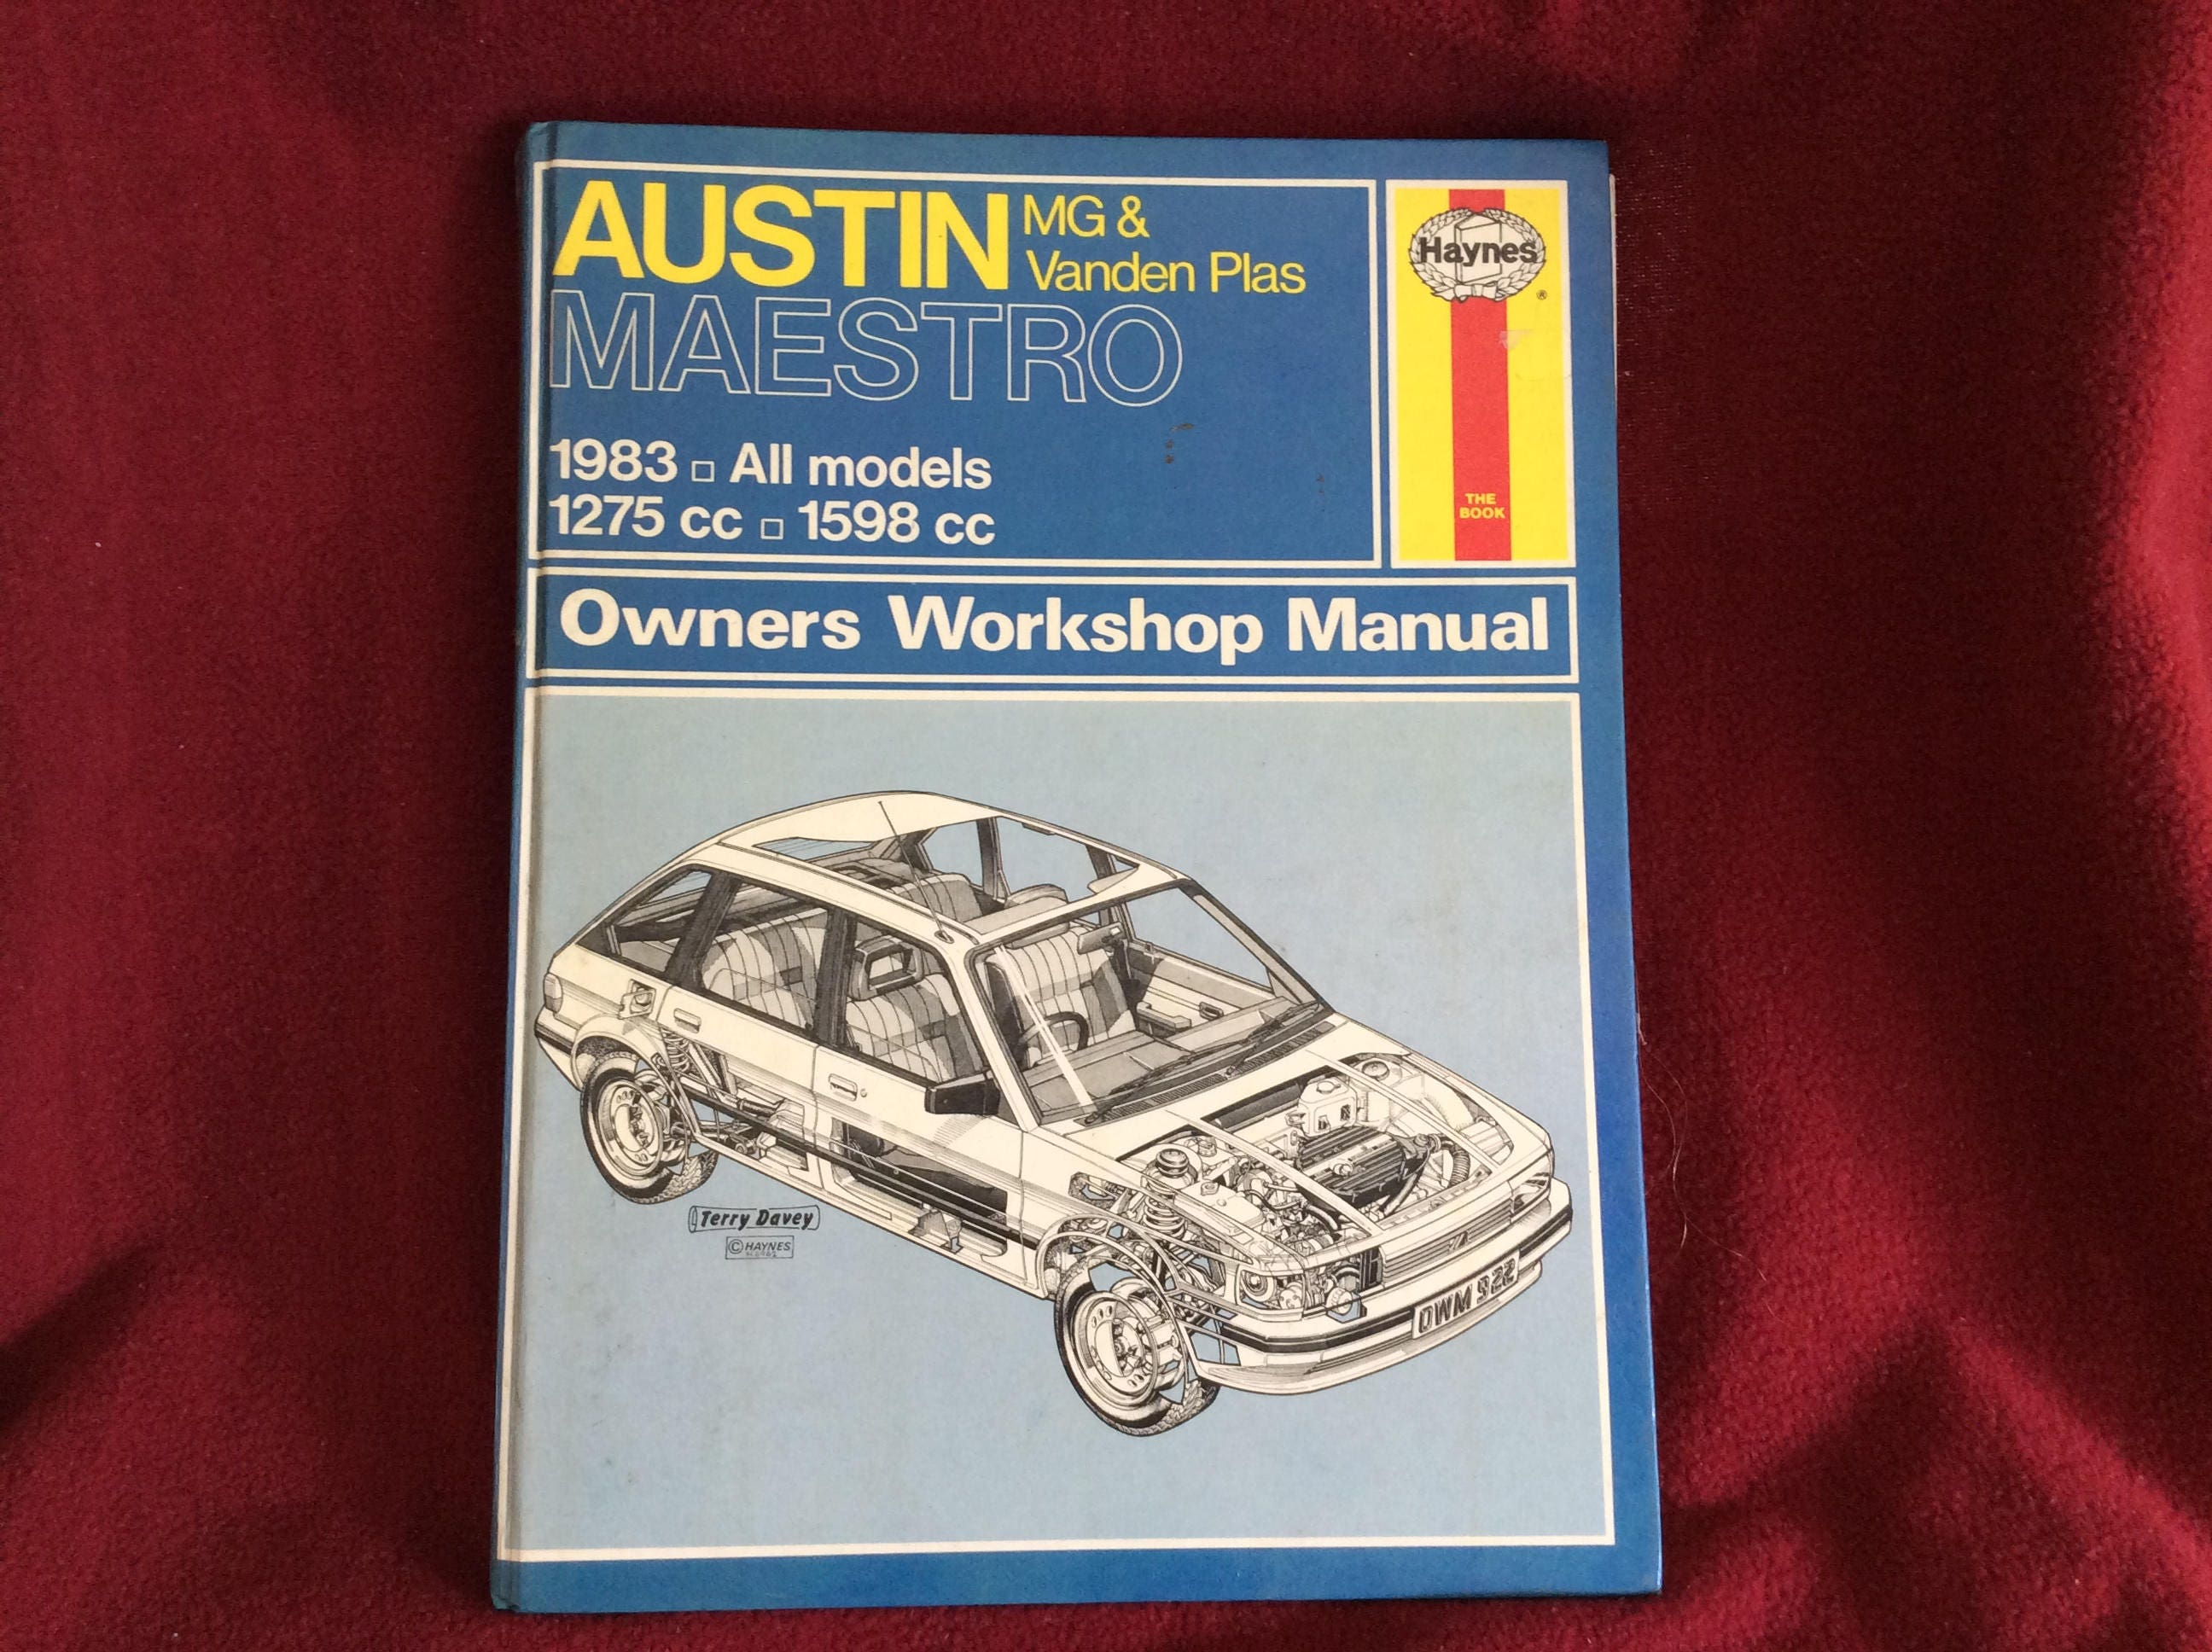 Haynes Owners Workshop Manual Austin MG and Vanden Plas Maestro #922